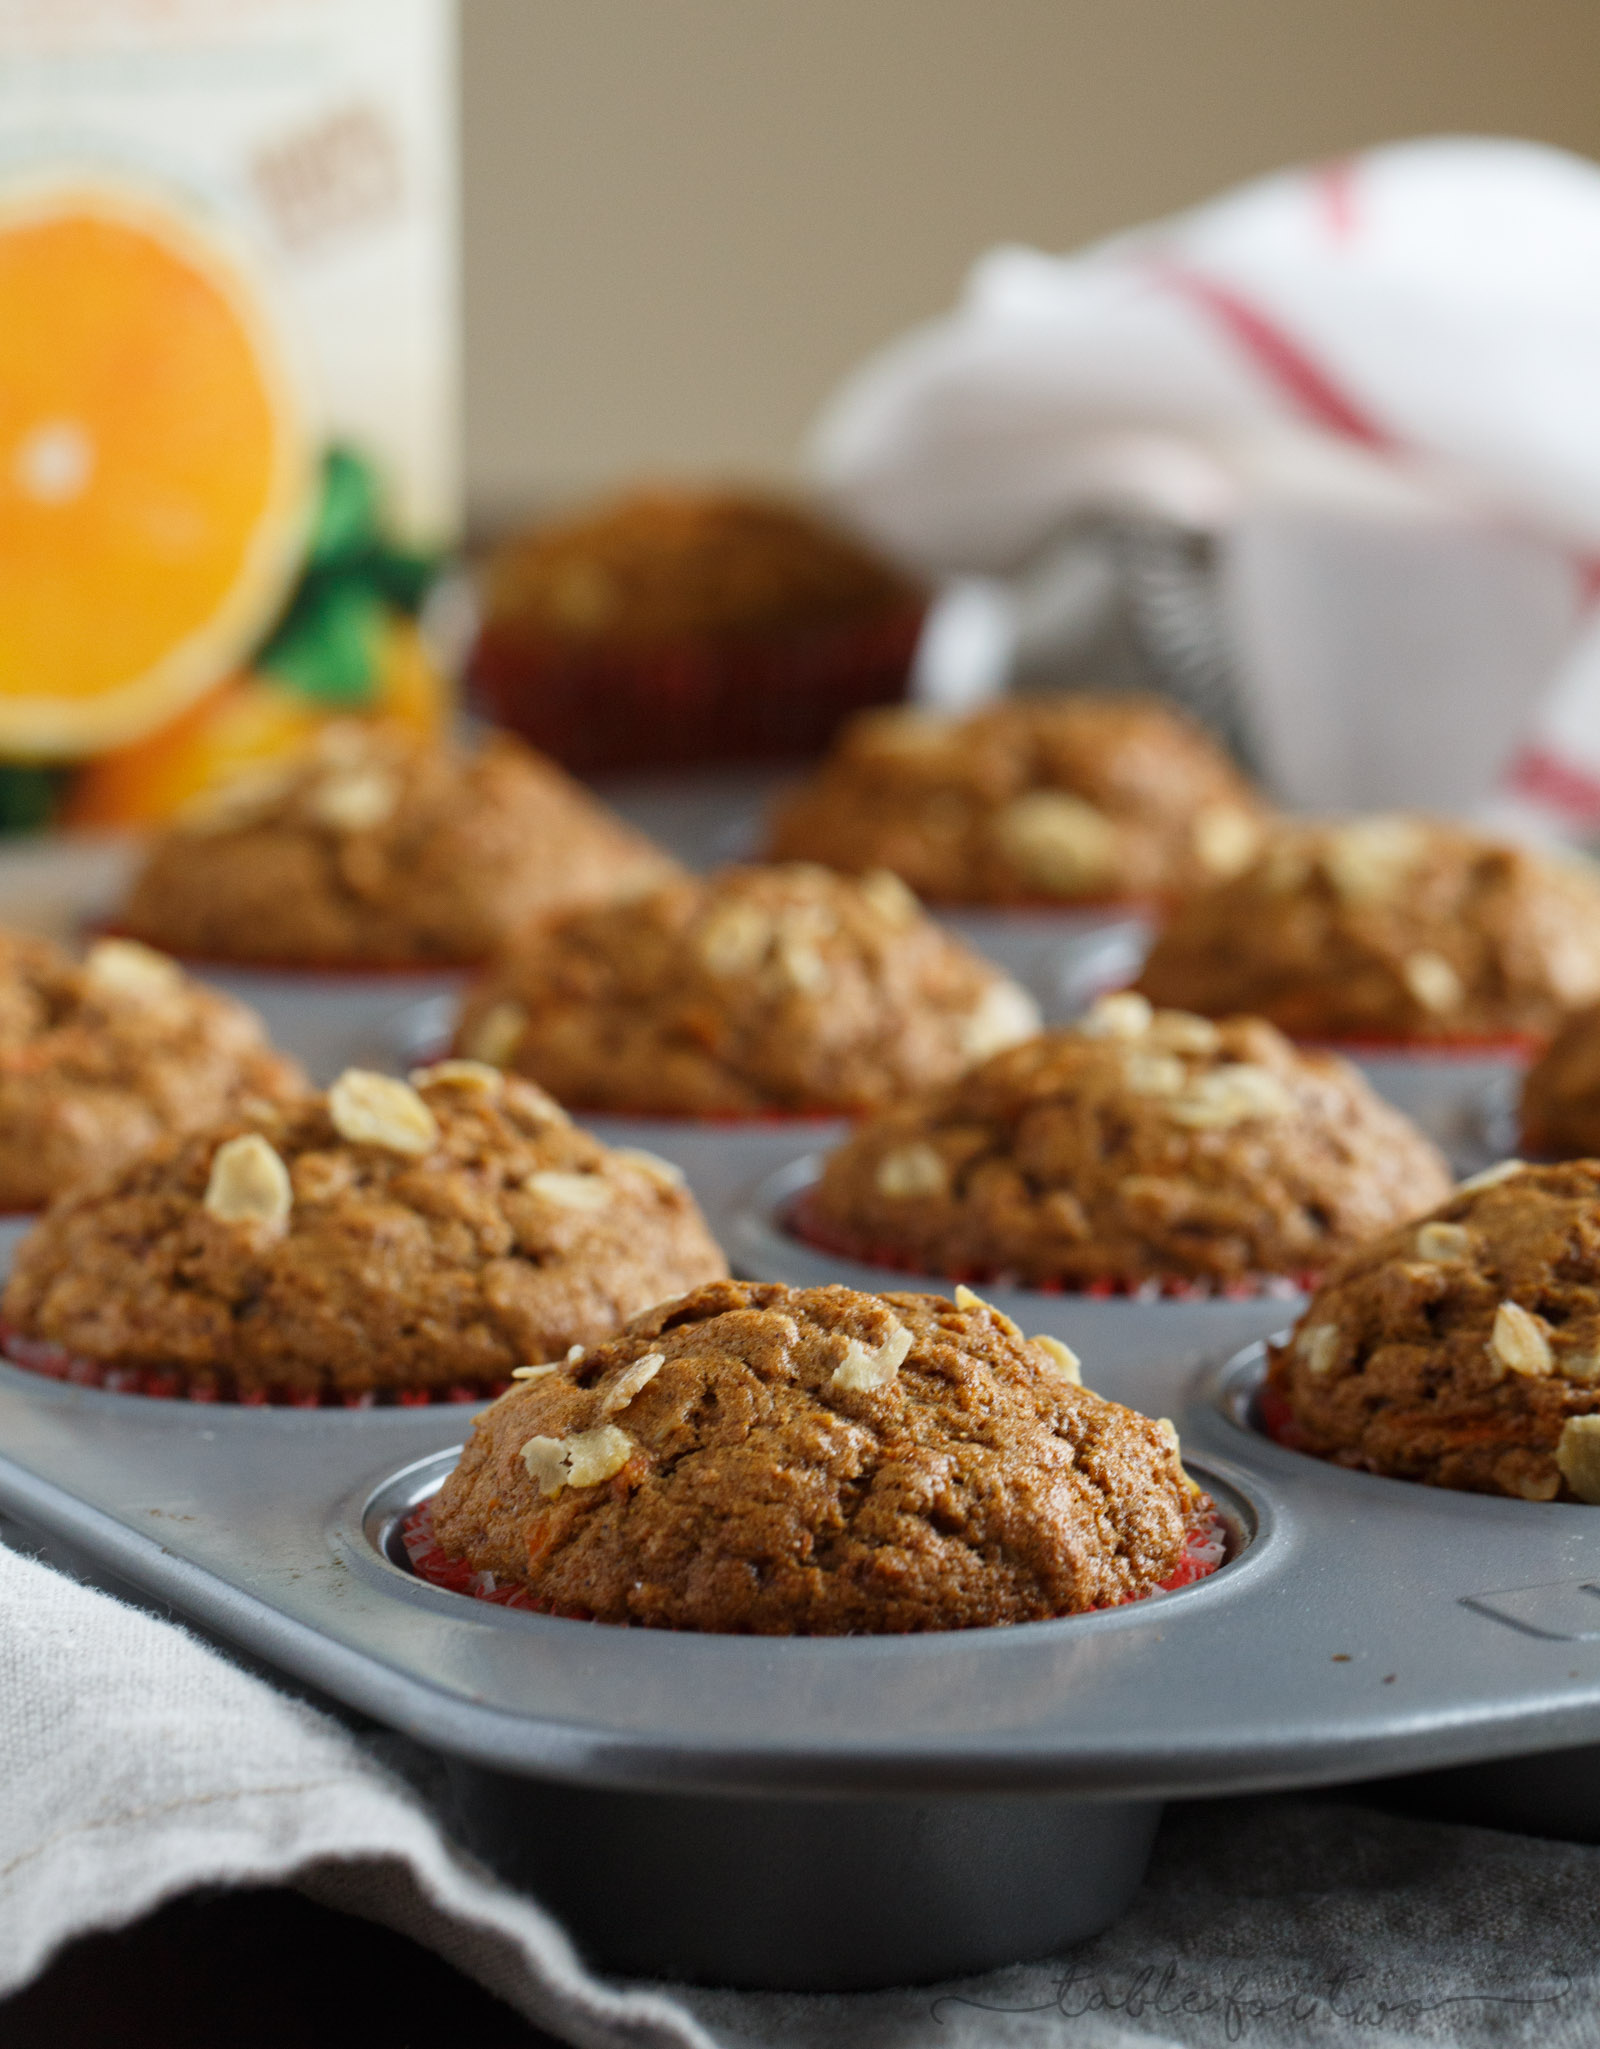 Incredibly flavorful, moist, and fluffy muffins for a quick on-the-go breakfast! Warm spices, orange and carrots make this spiced orange and carrot whole wheat muffin so tender and full of healthy goodness for your mornings!